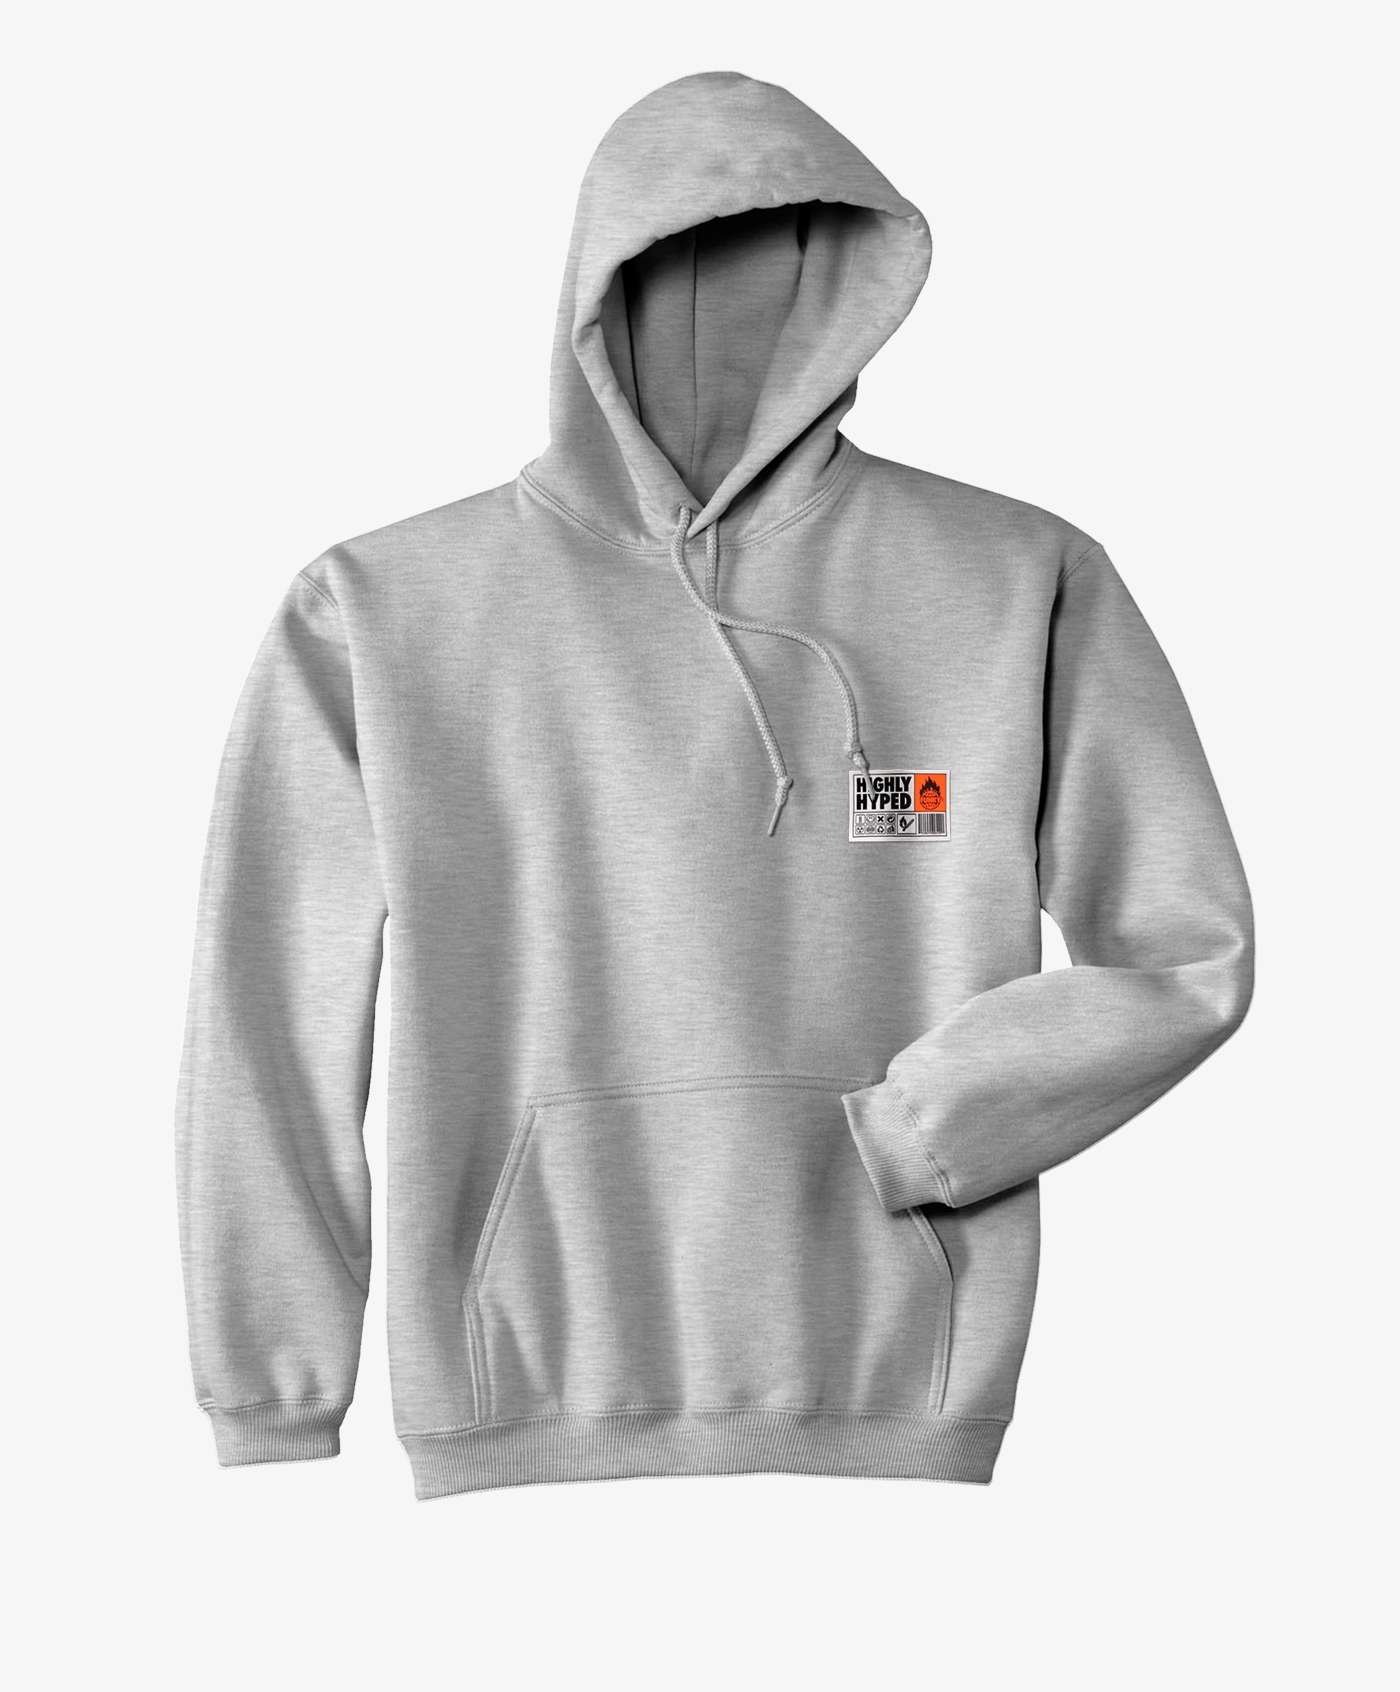 funky-hype-hoodie-grey-front-copia